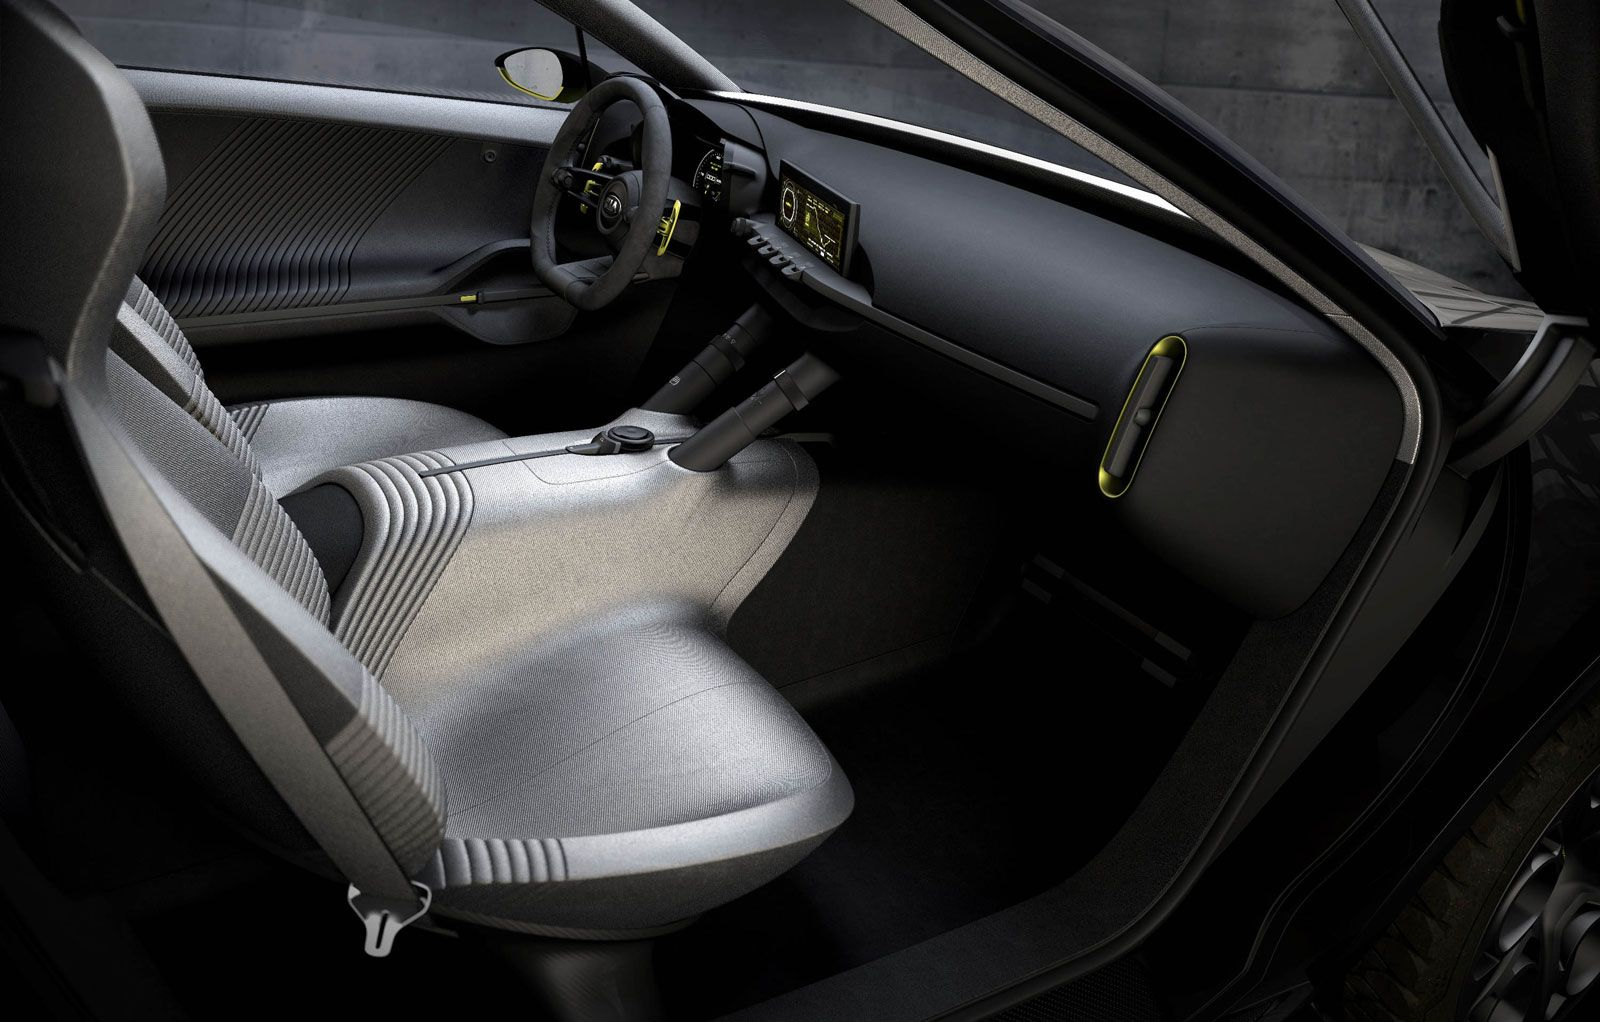 Kia Niro Concept Interior Automotive Interior Pinterest